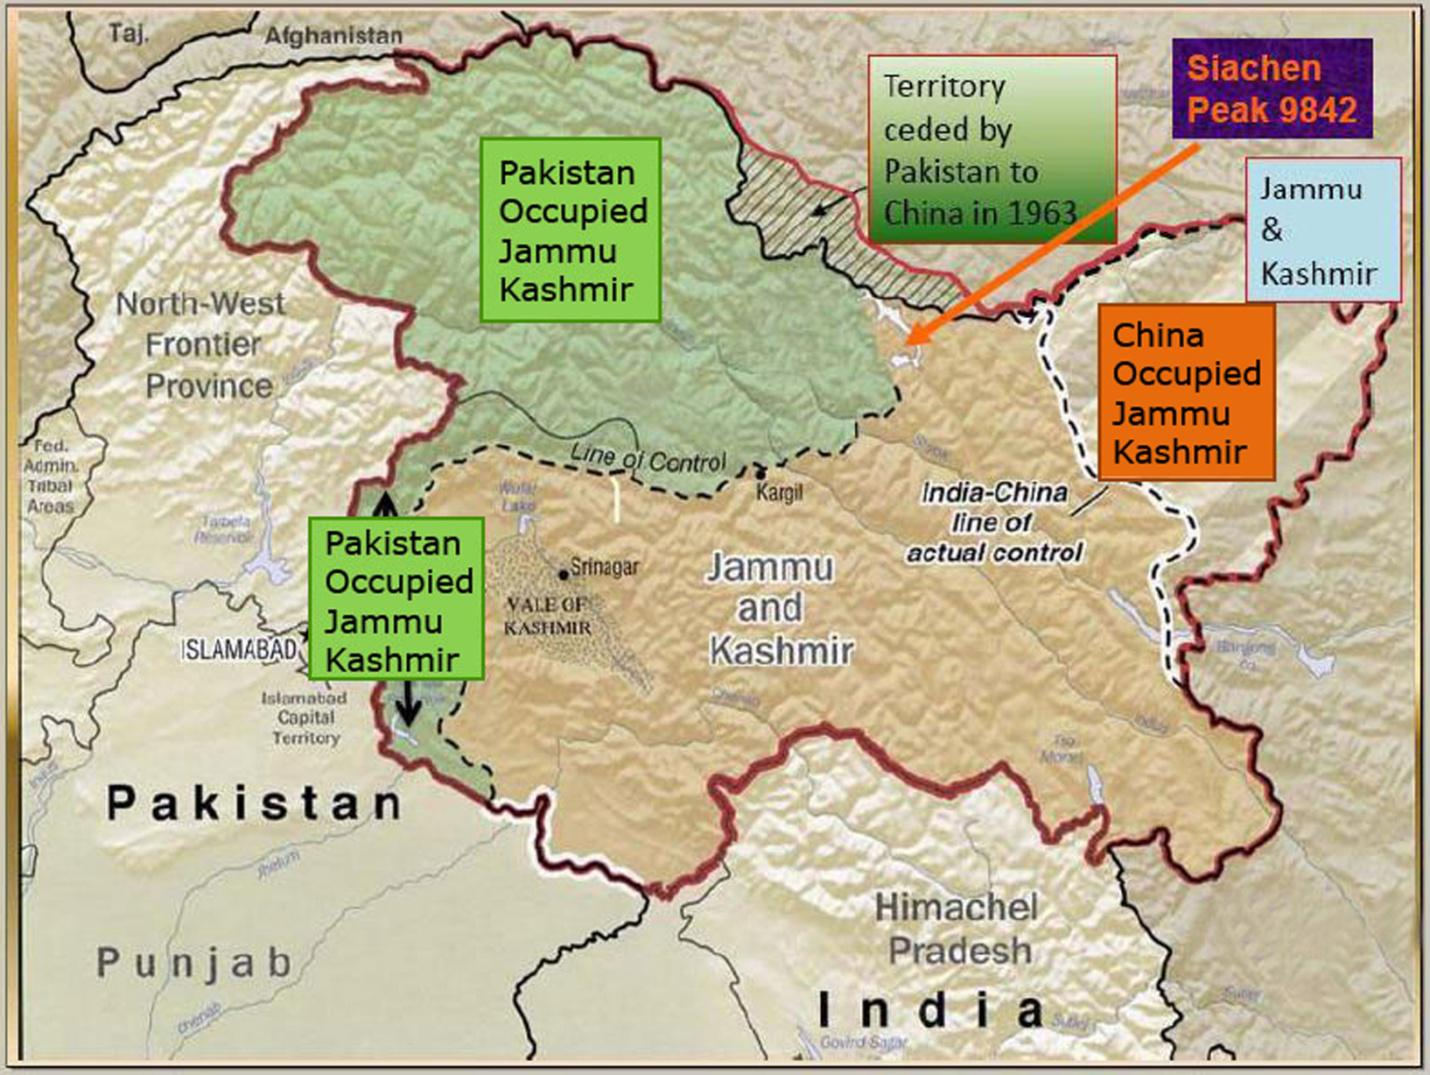 india and pakistan dispute essay With india, pakistan had bitter relations due to radcliff award, water dispute, due share problems, ideological difference and even important the behaviour of indian leaders towards pakistan gandhi once said, we will never accept this partition.